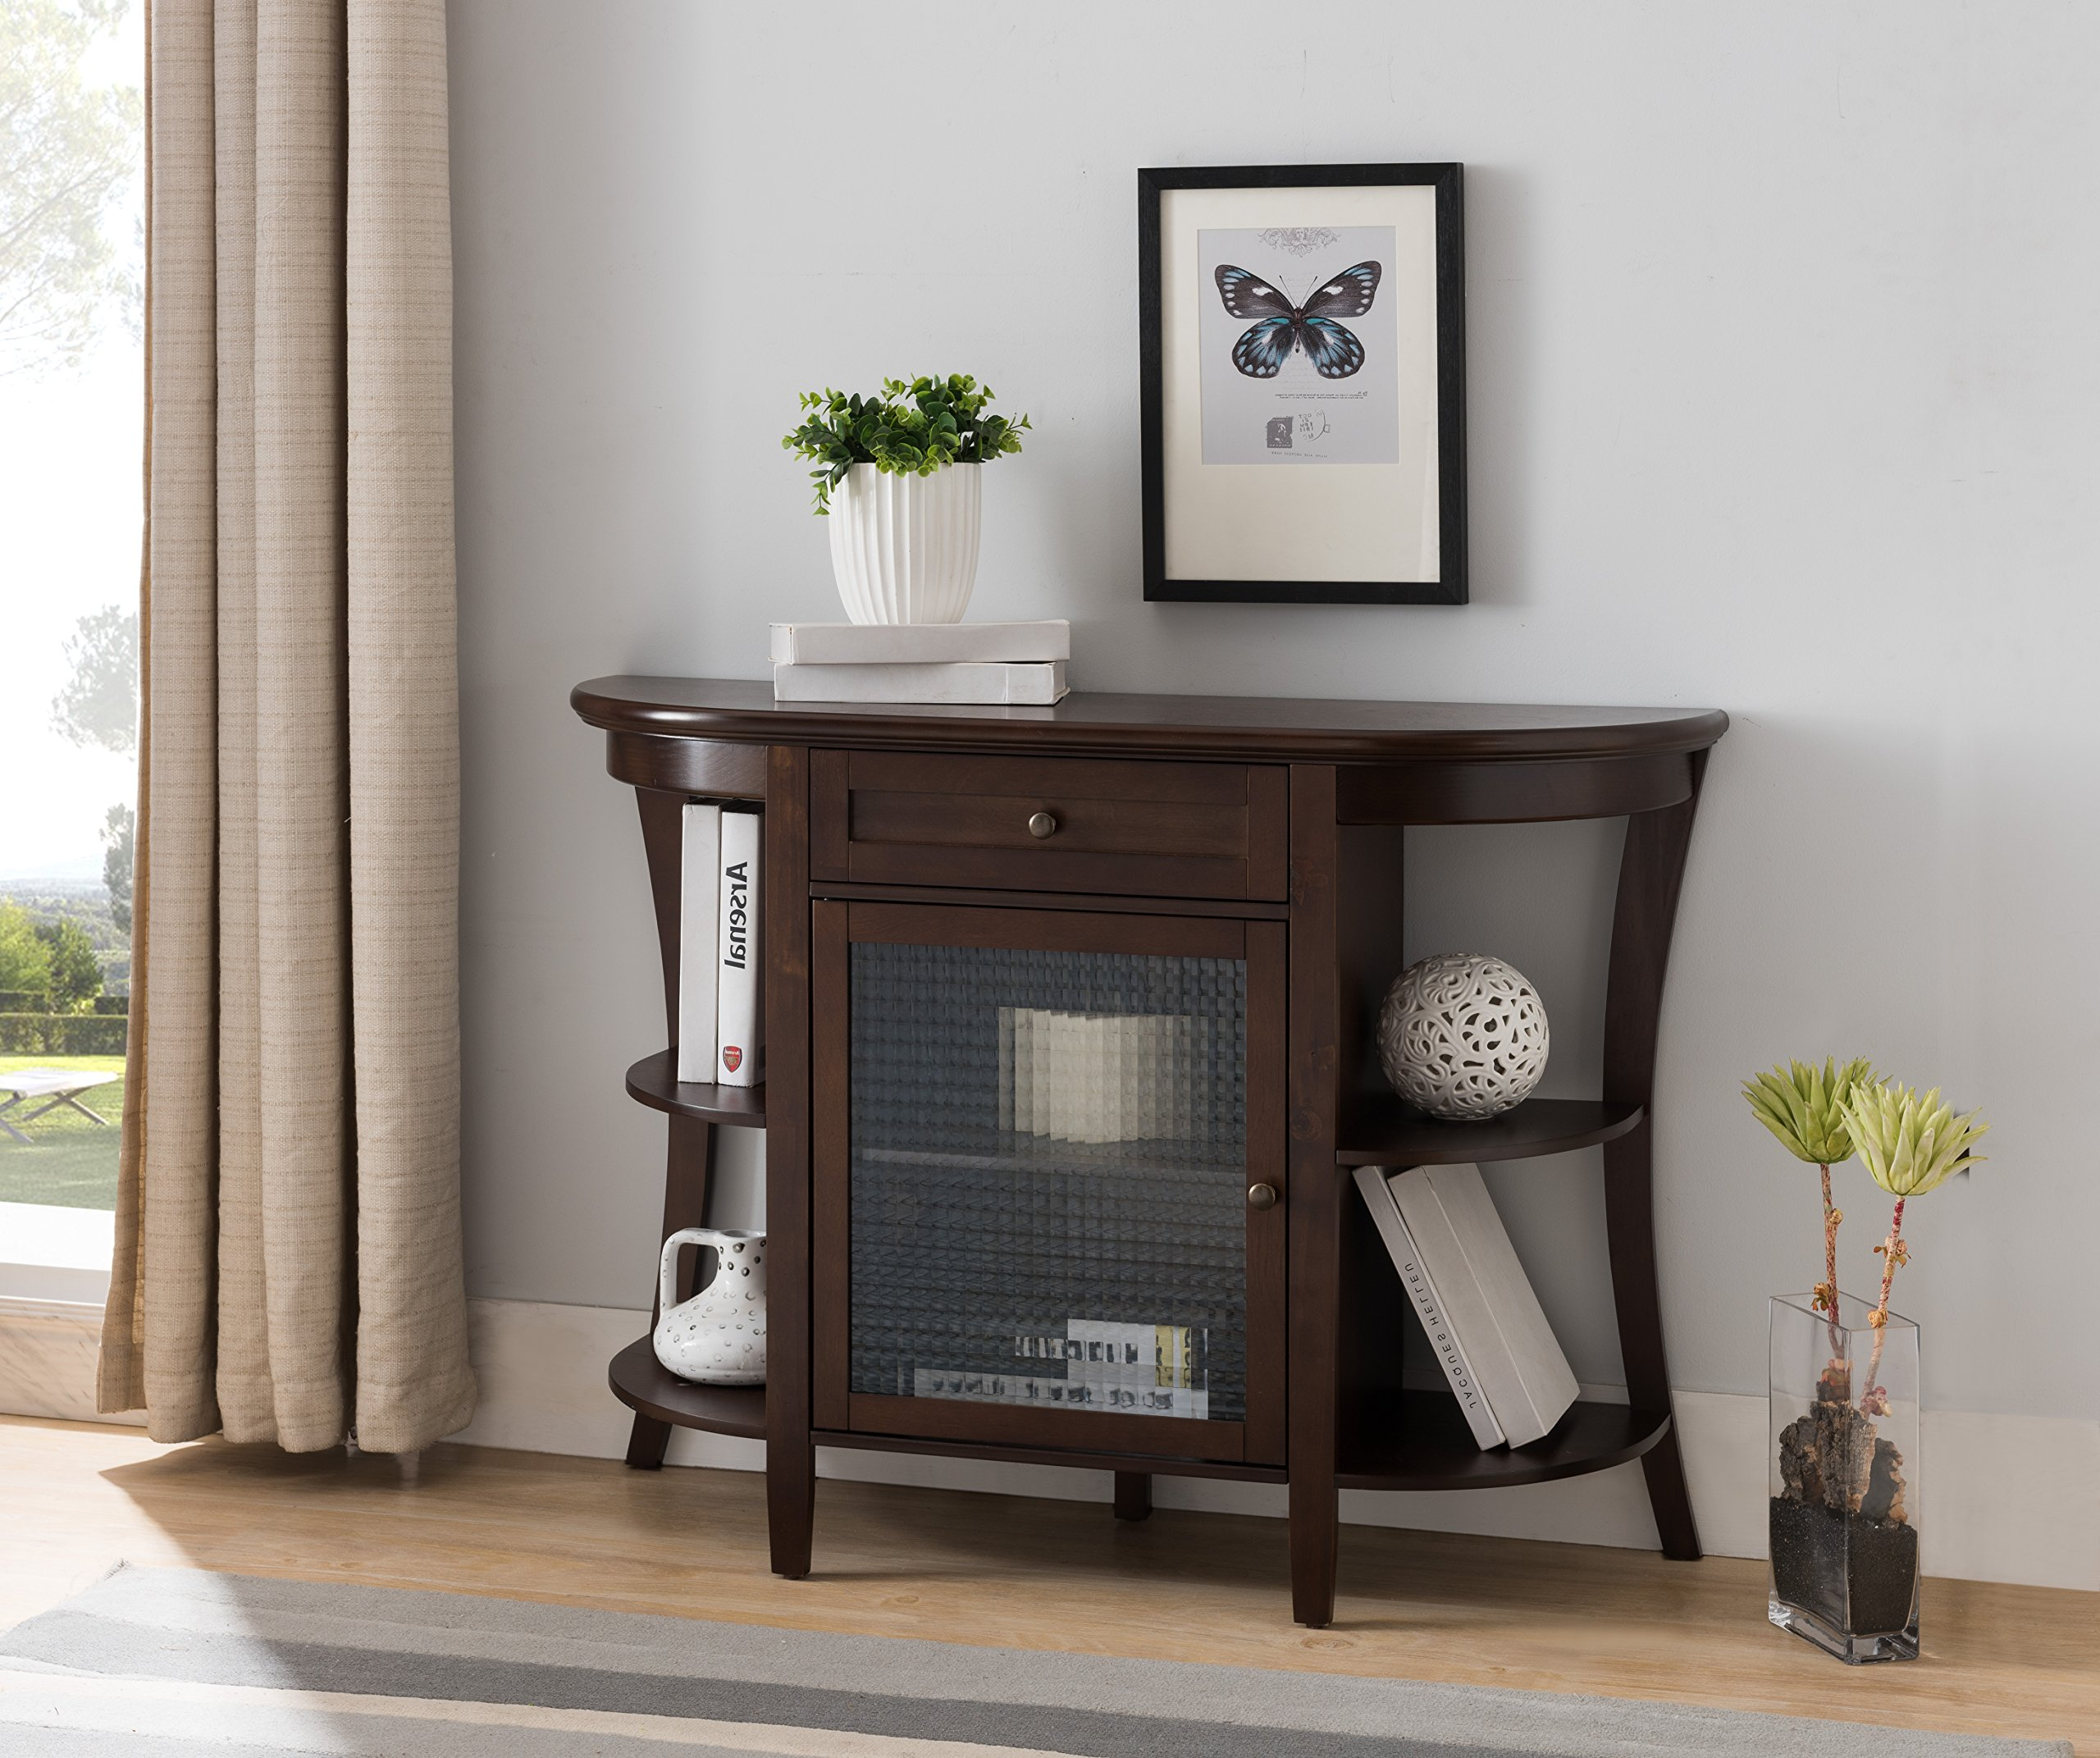 Walnut Wood Entryway Console Sofa Buffet Table With Storage Drawer, Cabinet & Shelves by Pilaster Designs